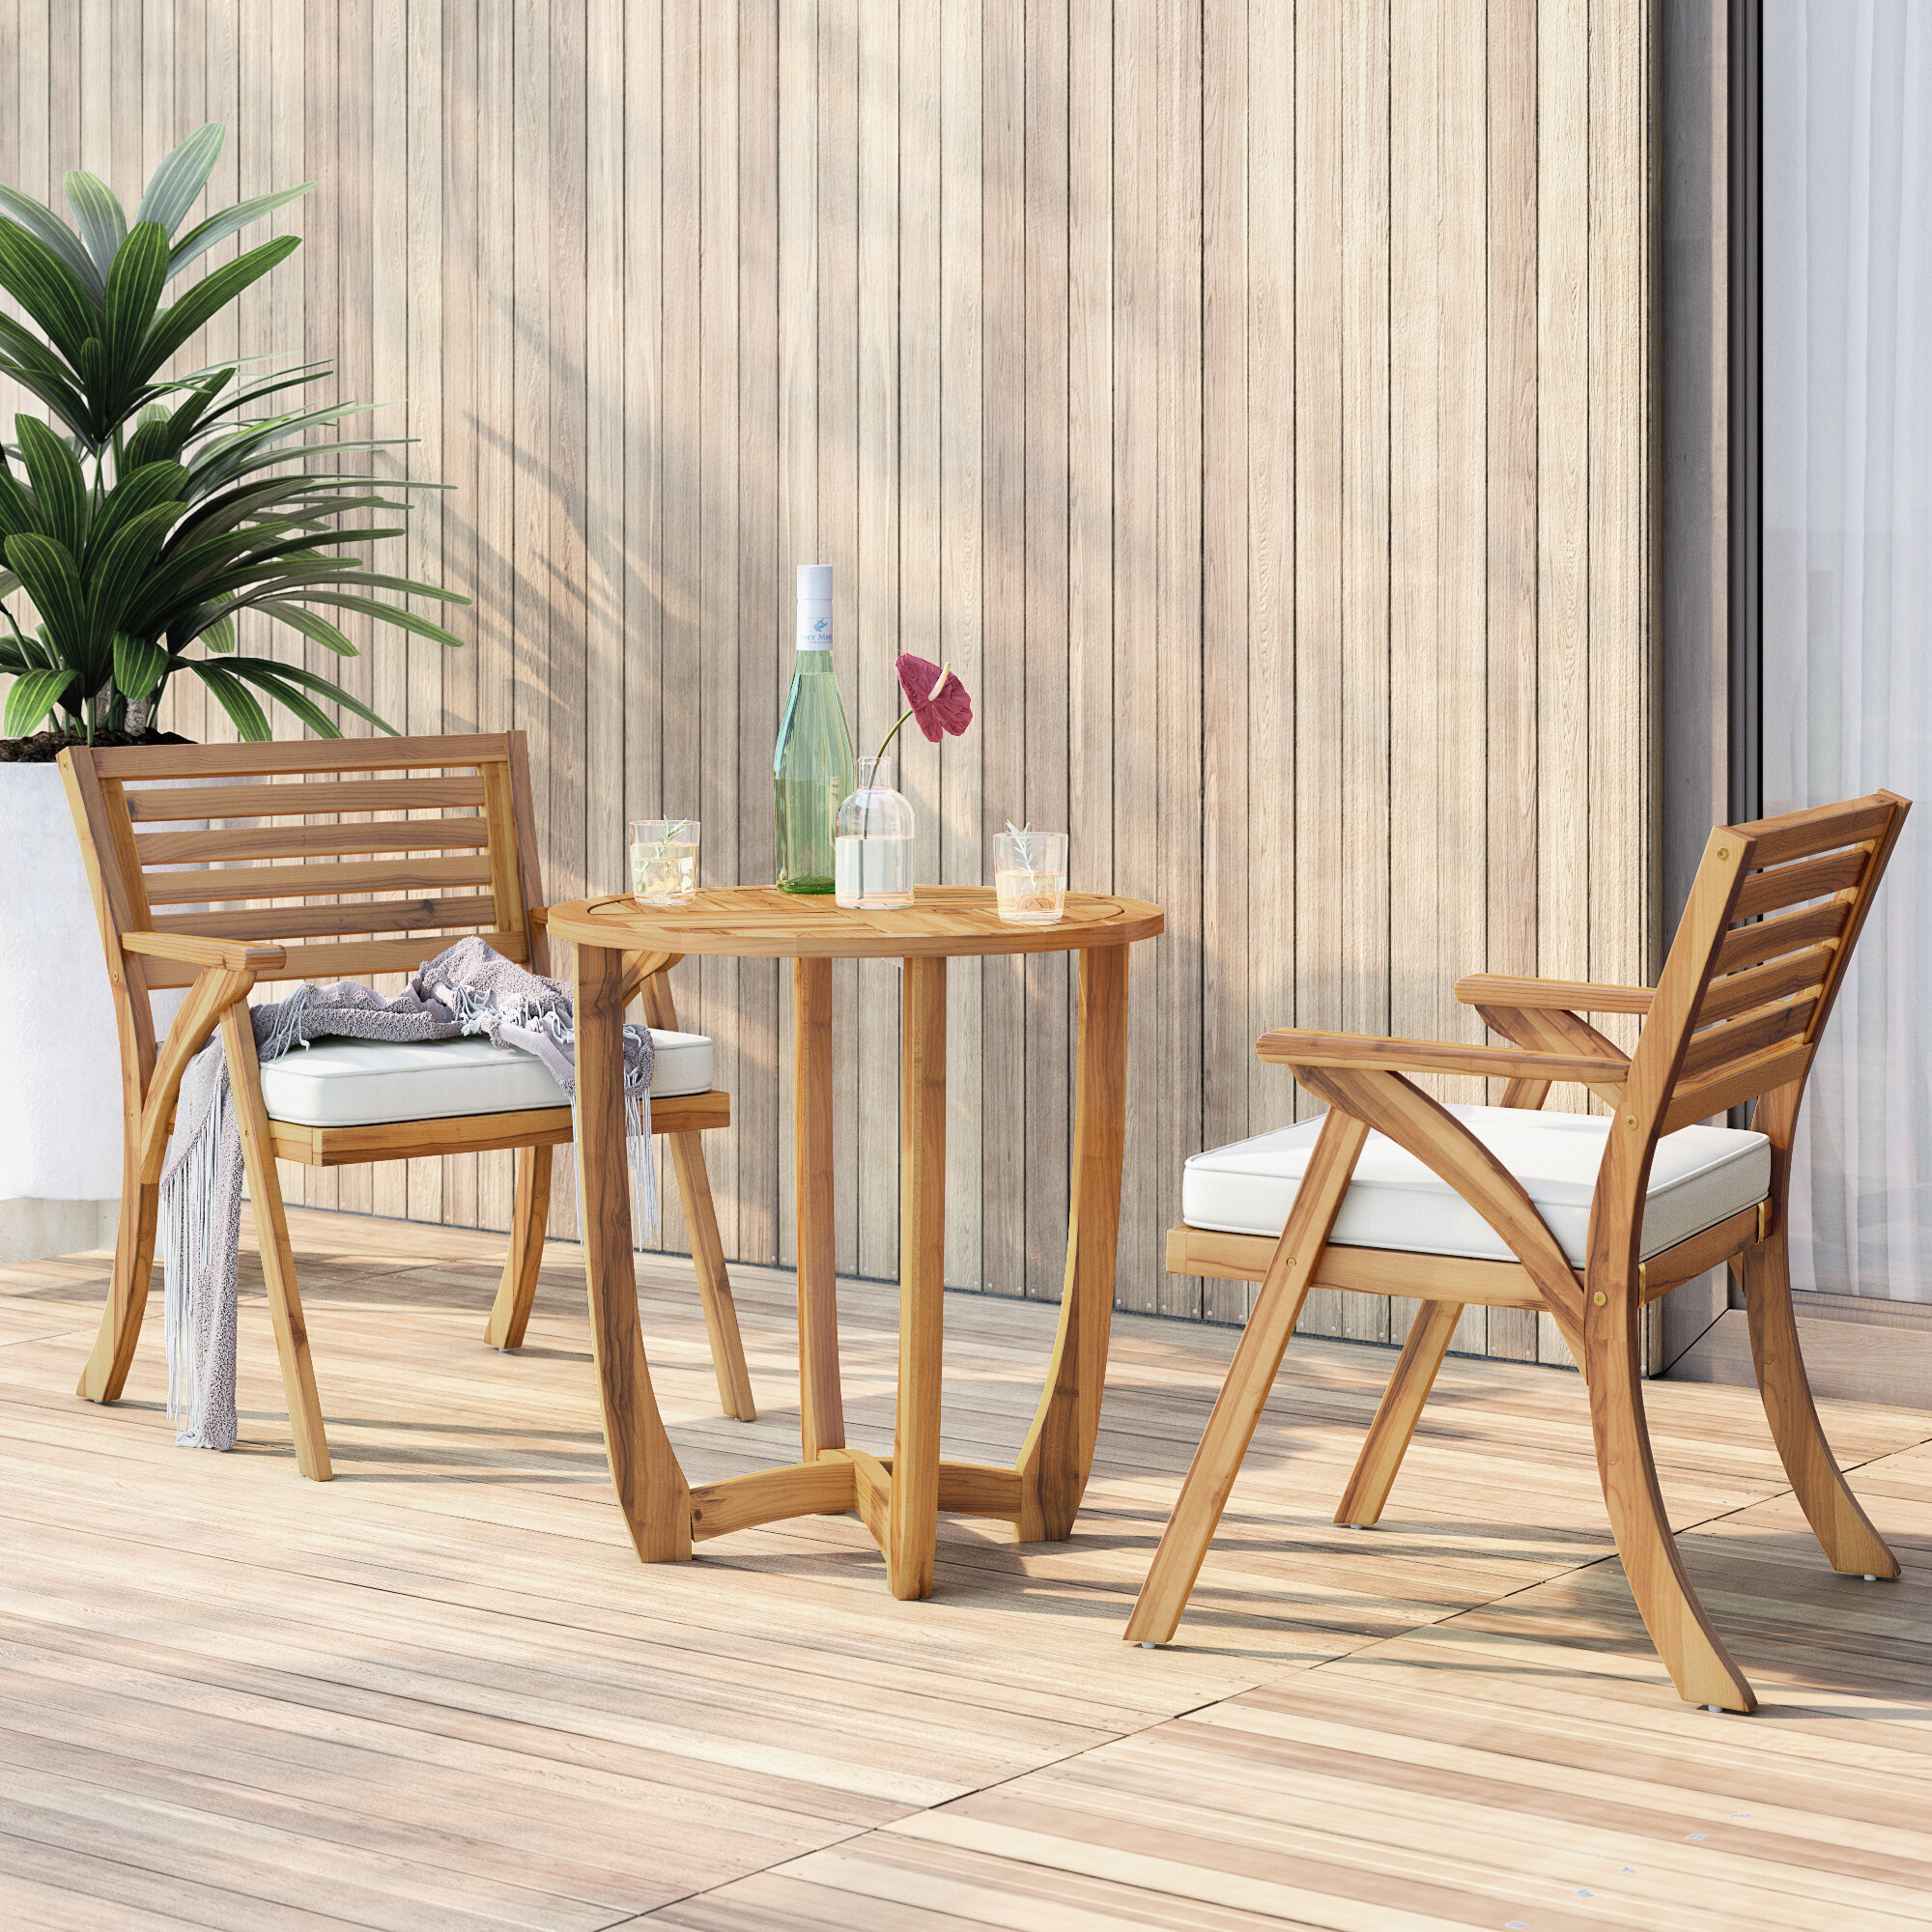 Mercury Row 3 Piece Teak Bistro Set With Cushions Reviews Wayfair